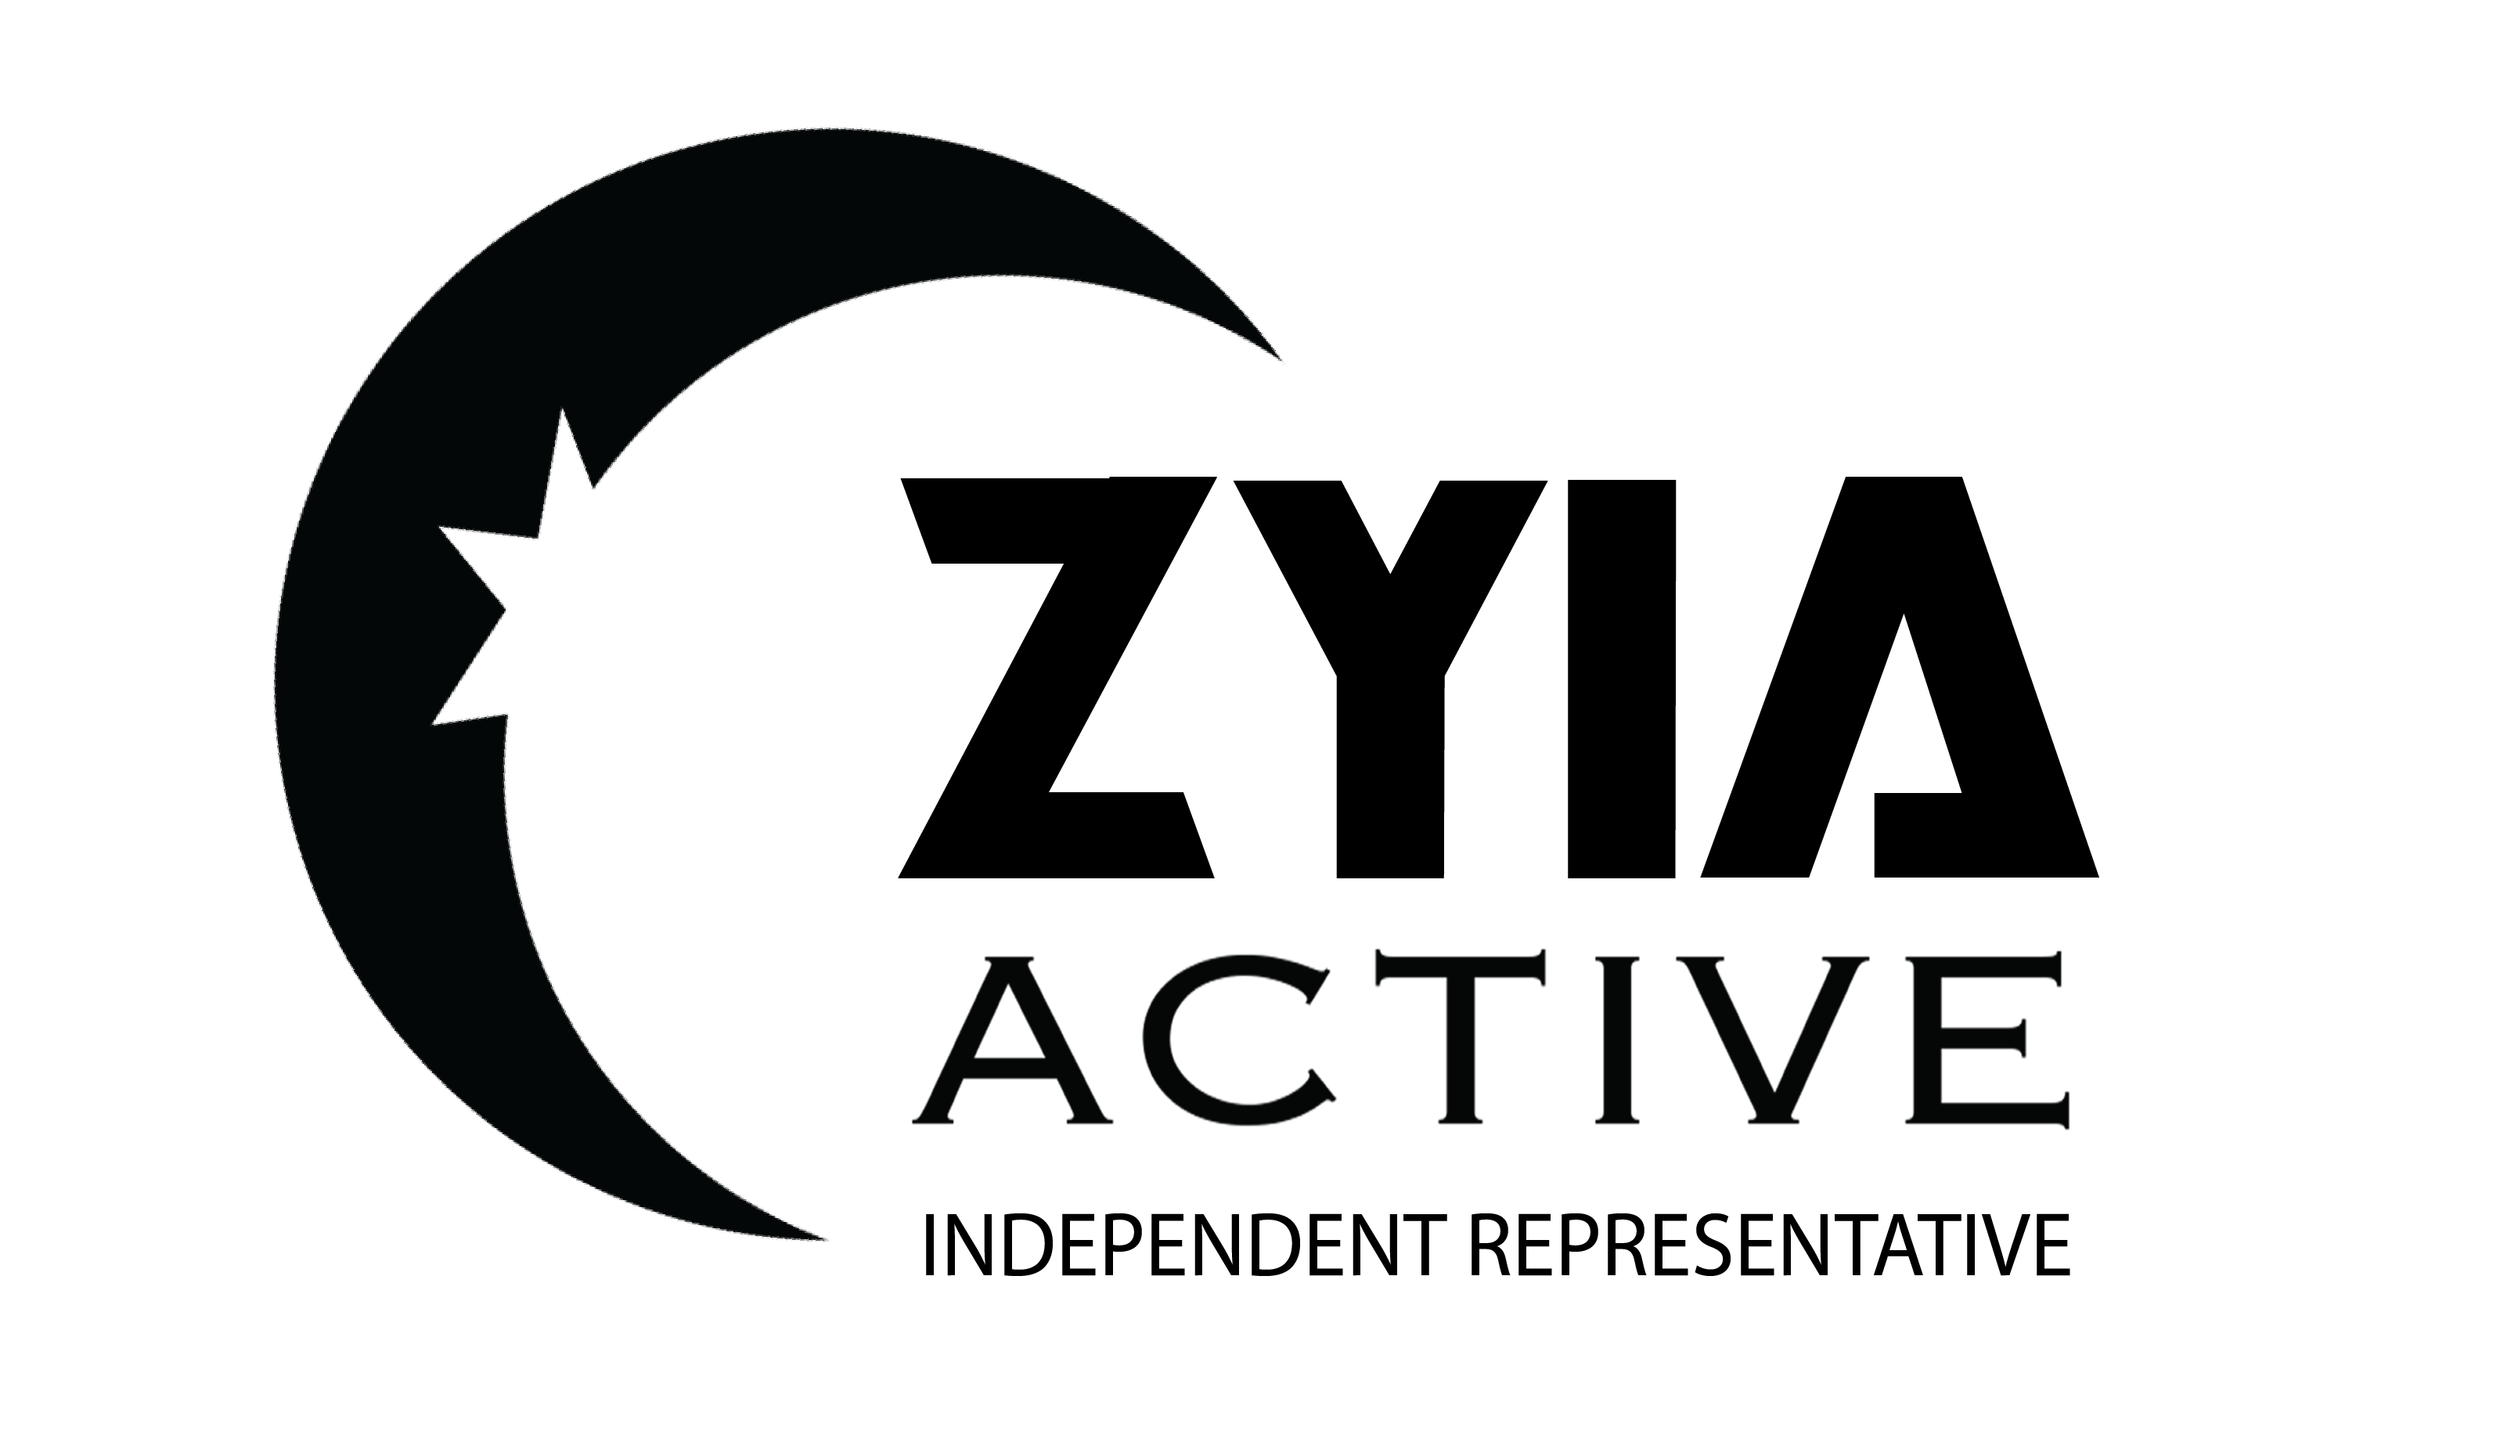 Zyia logo 2297-ZYIA_Active_Indep_Rep.png